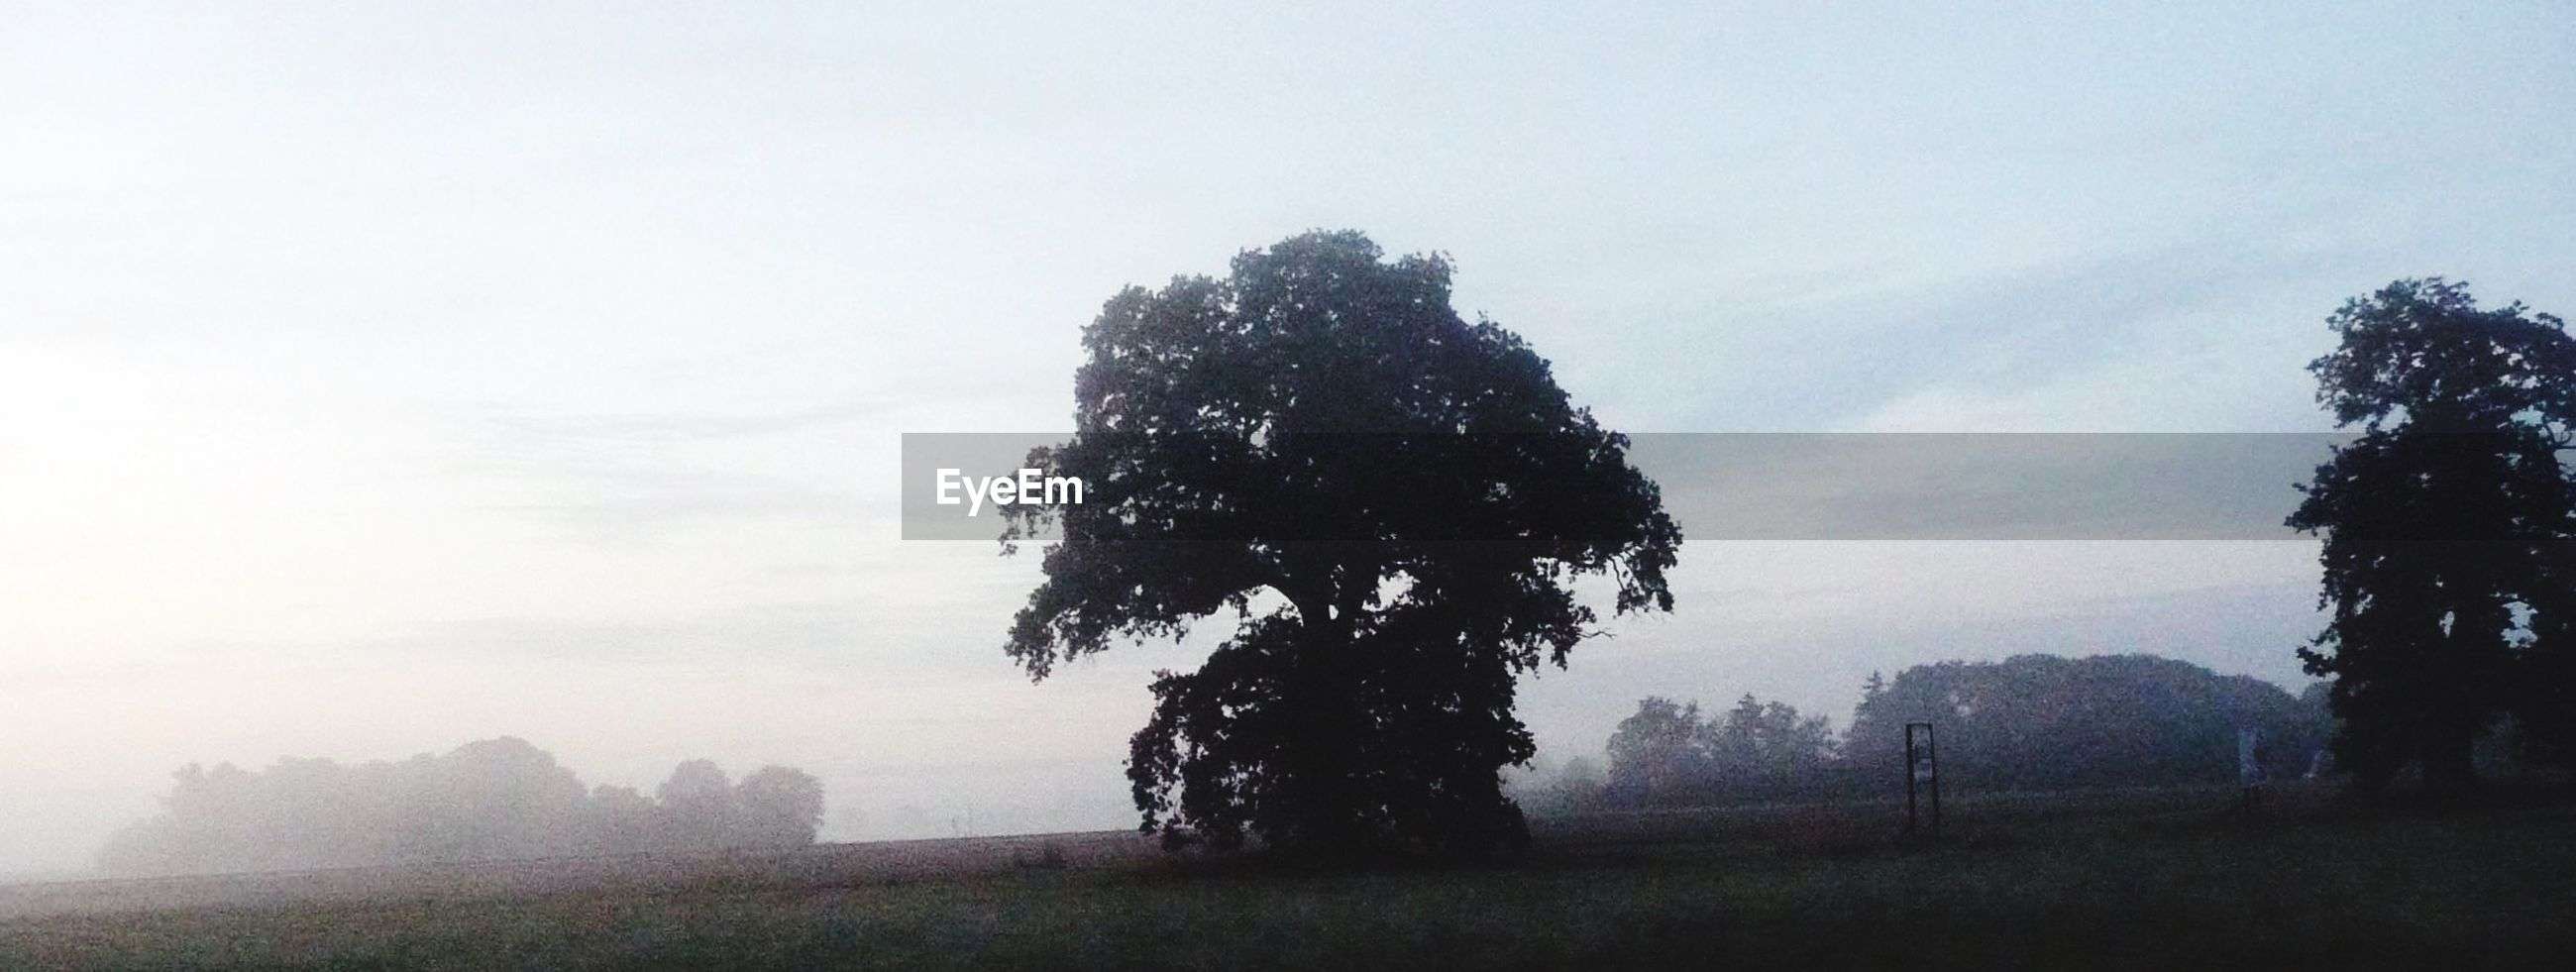 tree, sky, tranquility, tranquil scene, field, landscape, silhouette, nature, growth, beauty in nature, grass, scenics, clear sky, copy space, outdoors, day, bare tree, no people, non-urban scene